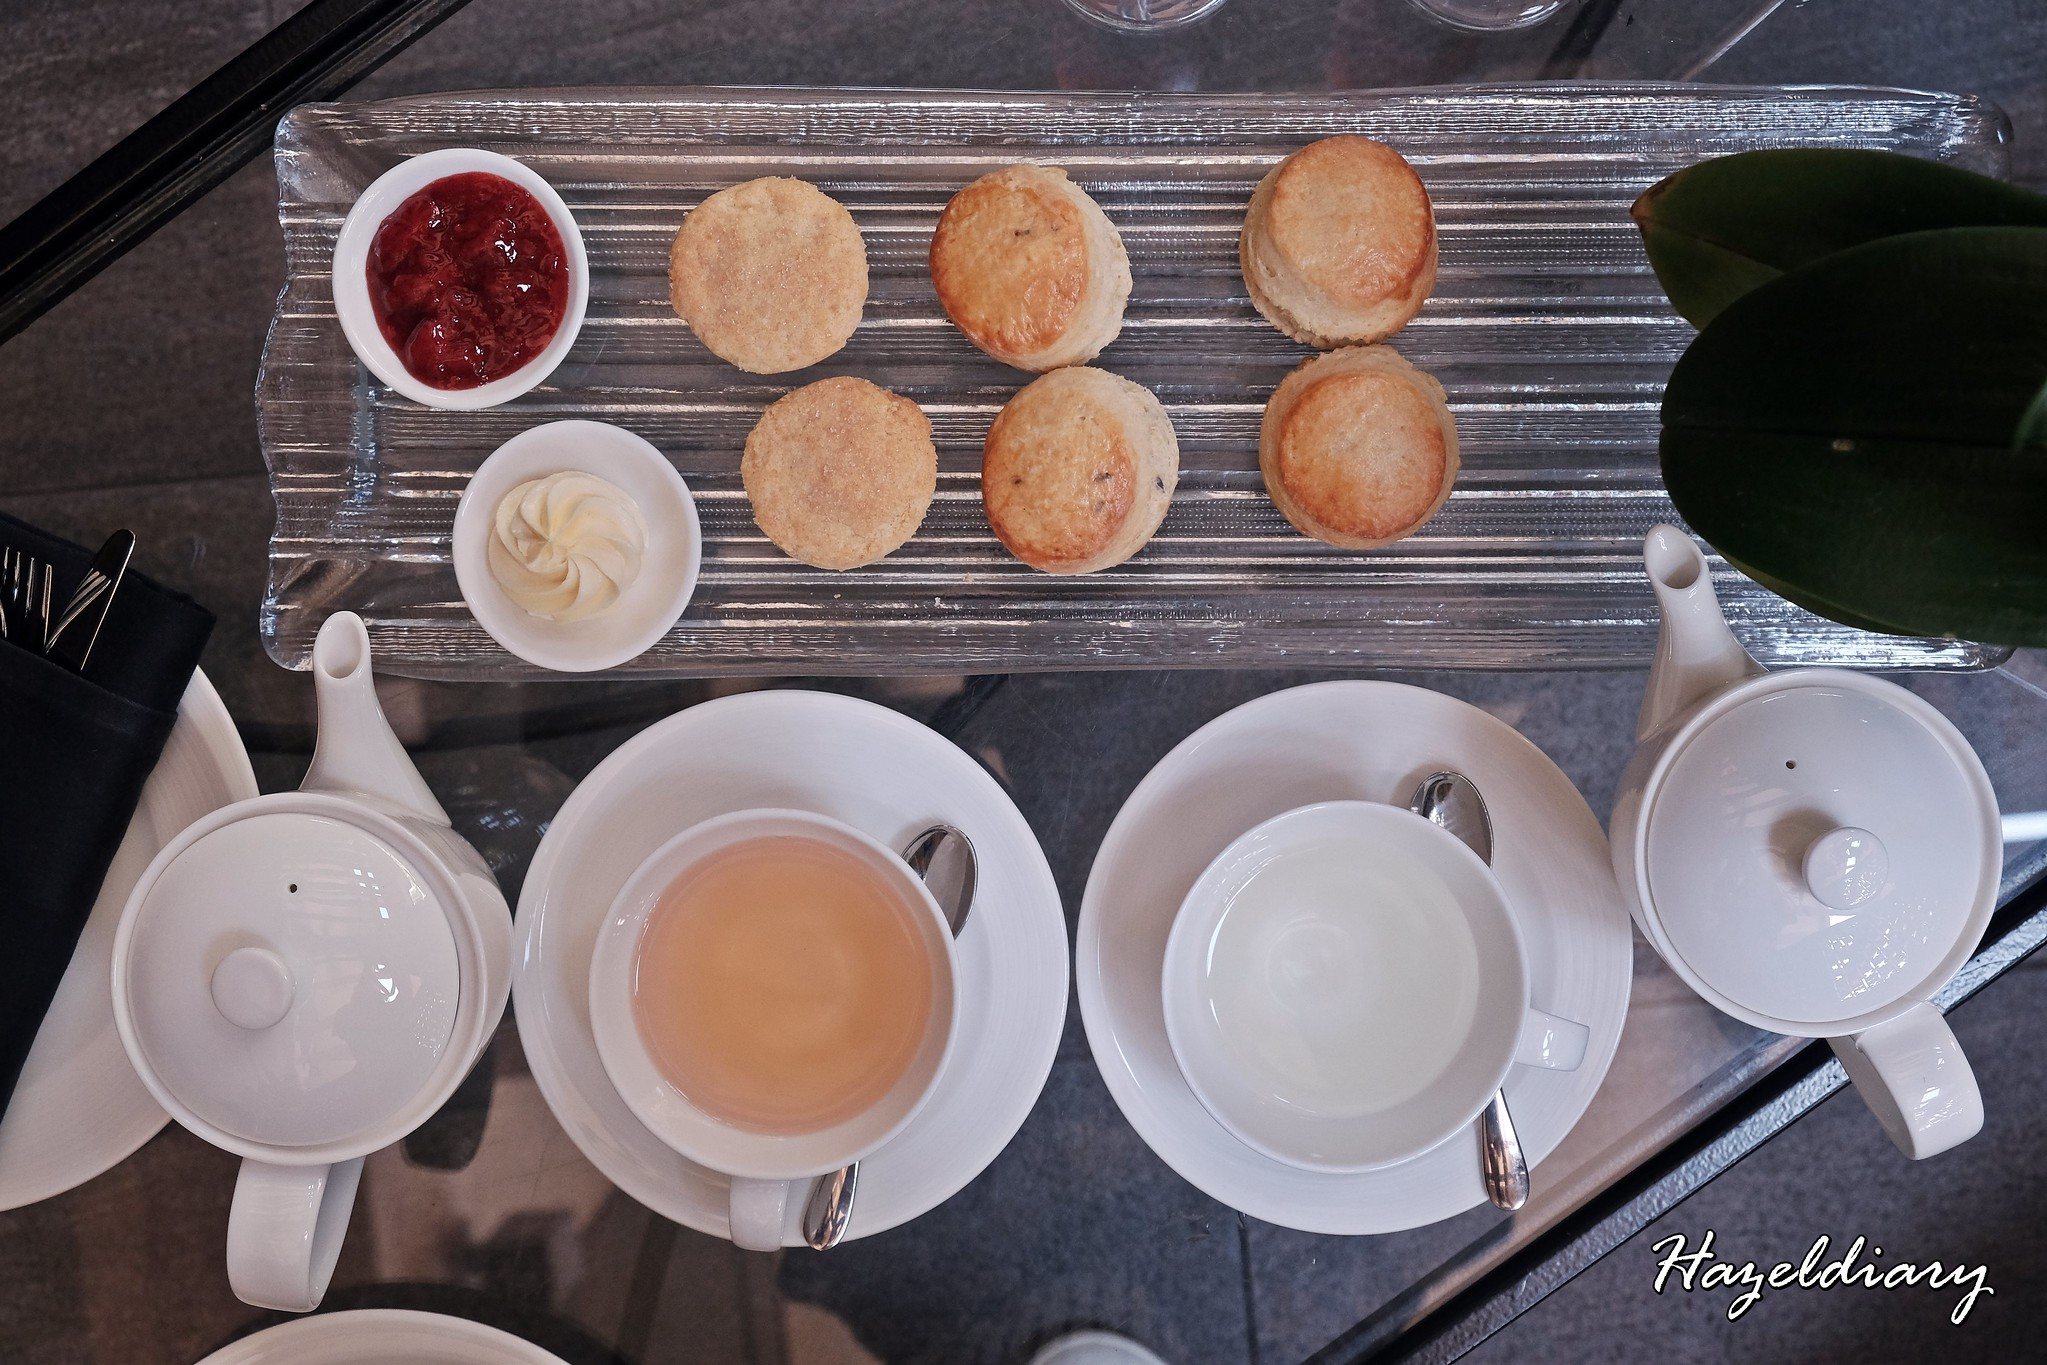 Floral Weekend High Tea-One Ninety Bar Four Seasons Hotel Singapore-Scones